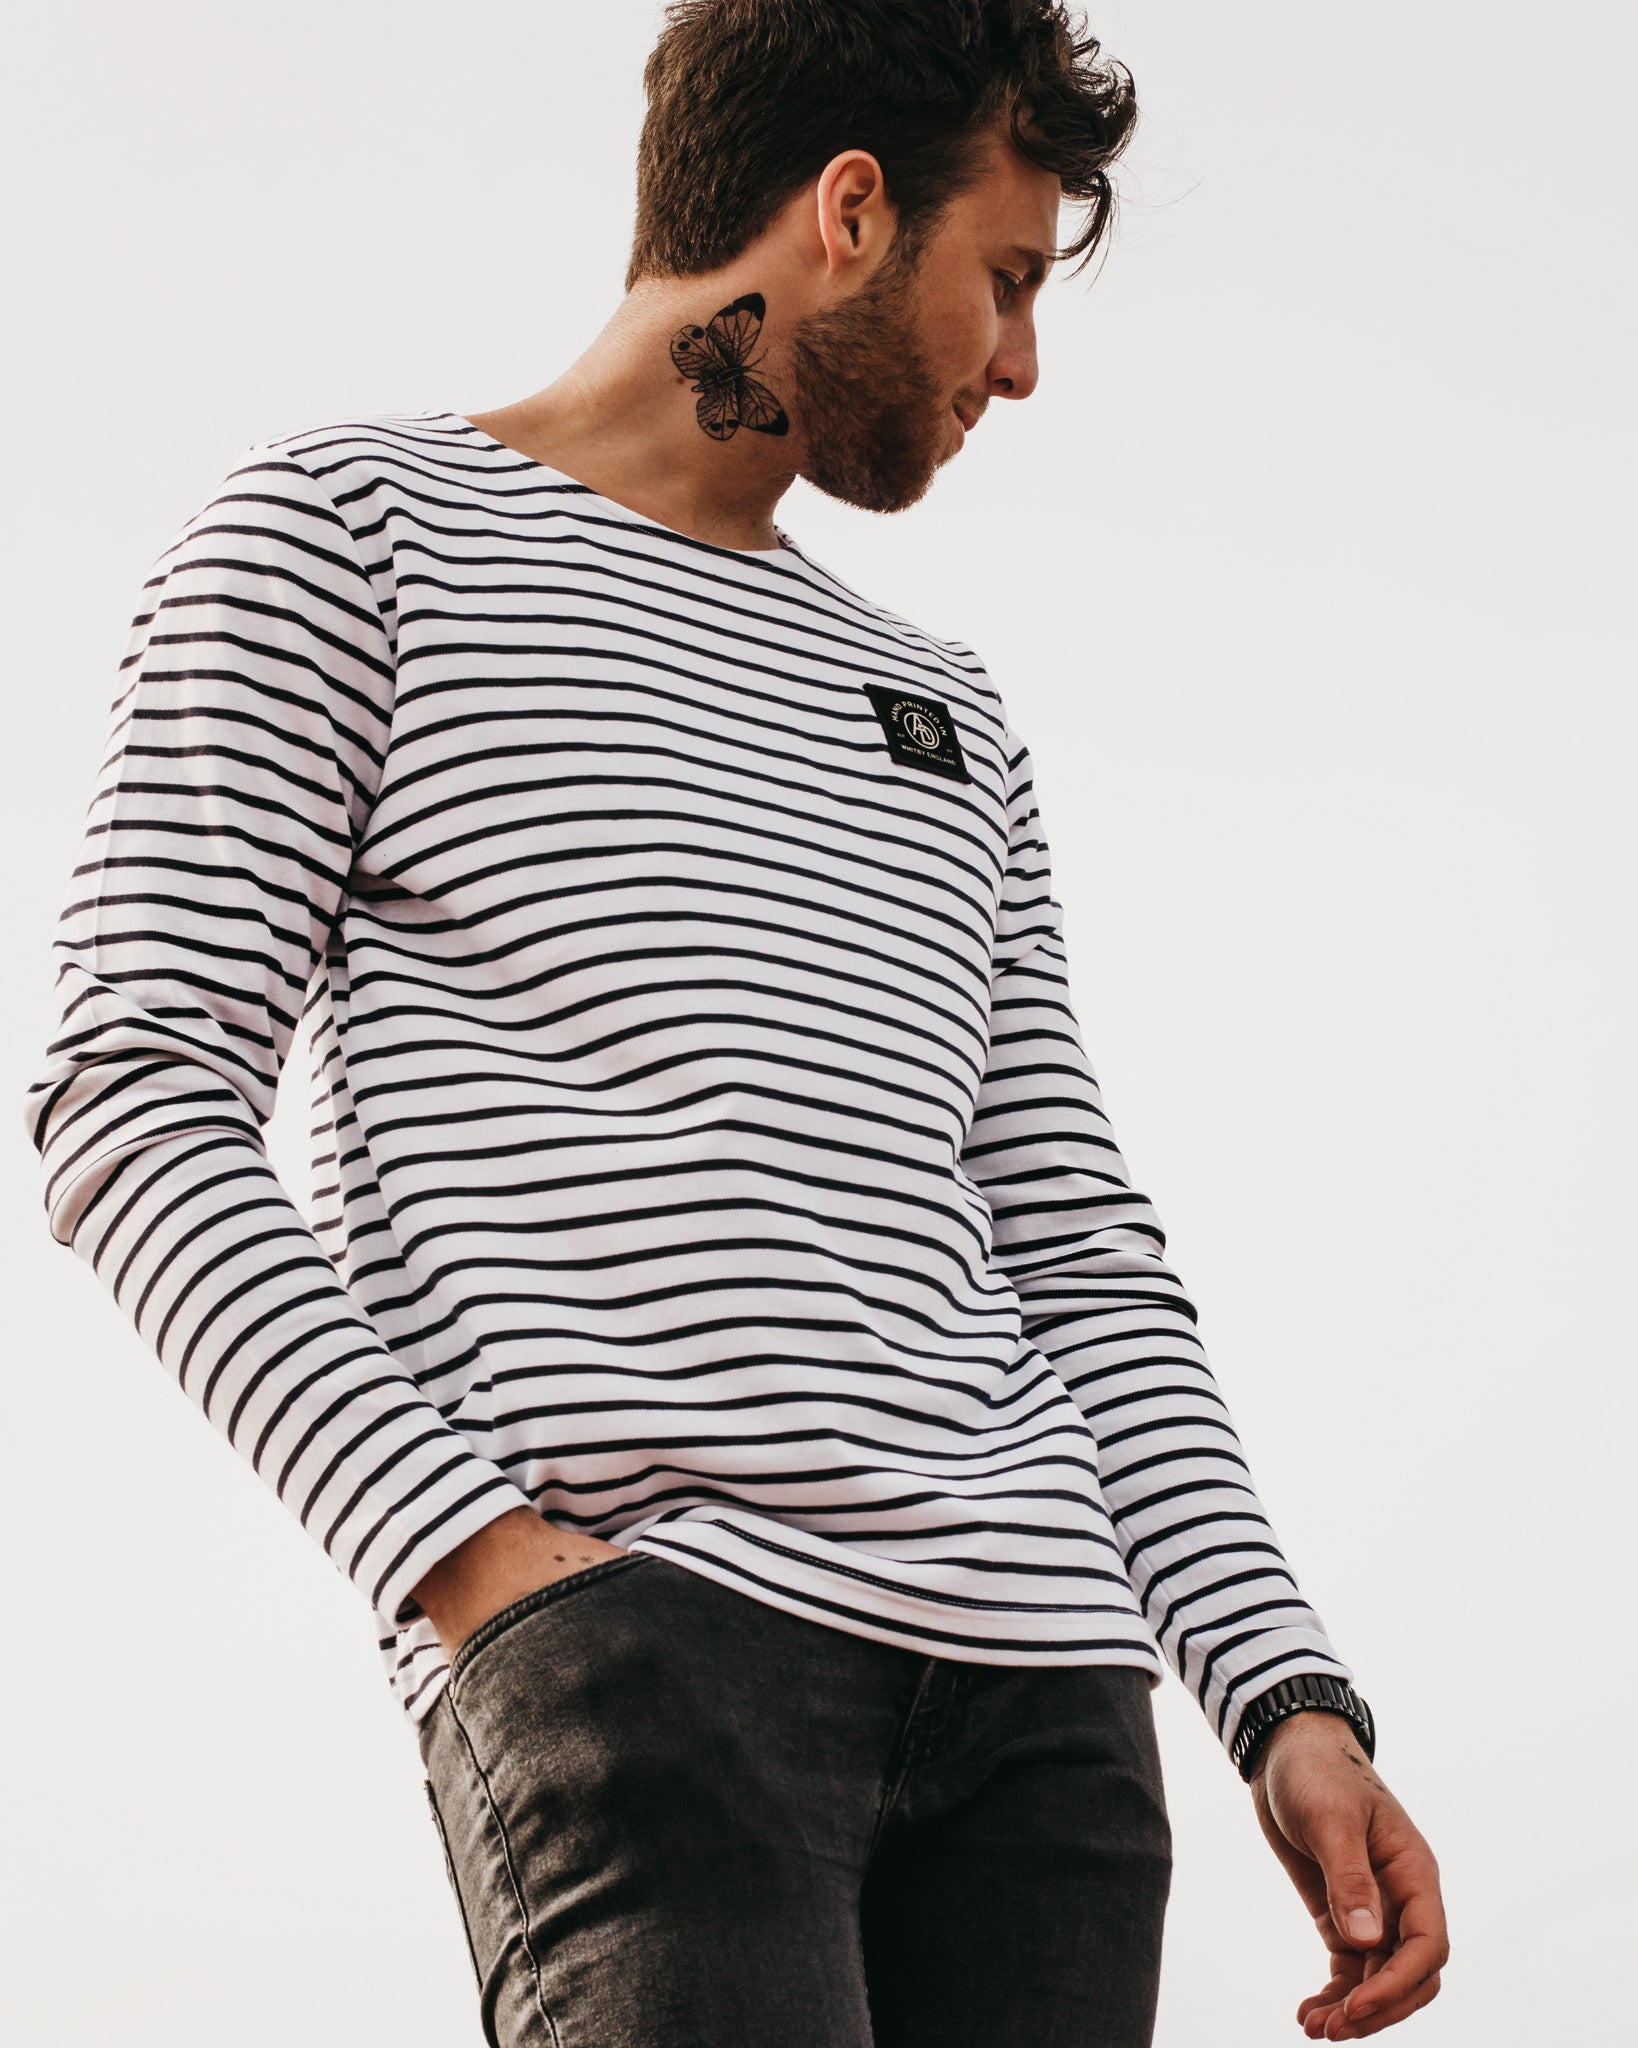 'Insignia' Striped Breton Long Sleeve Top by ART DISCO